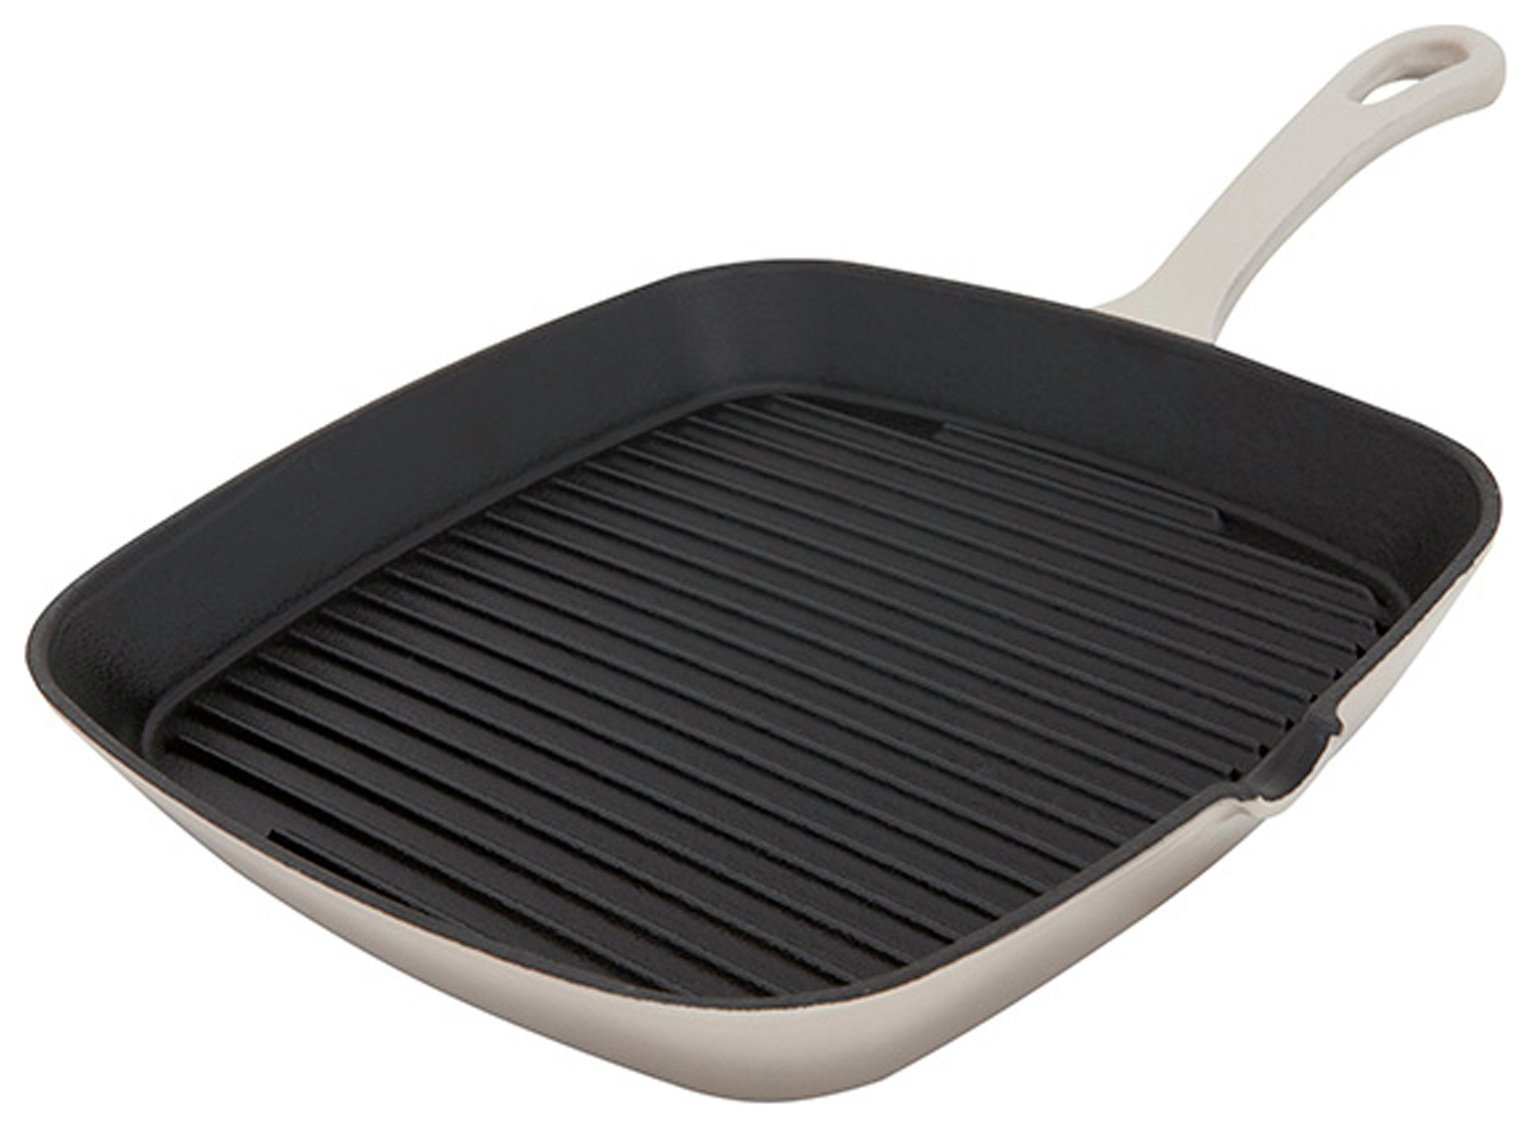 Sainsbury's Home Cast Iron Griddle Pan - Mushroom